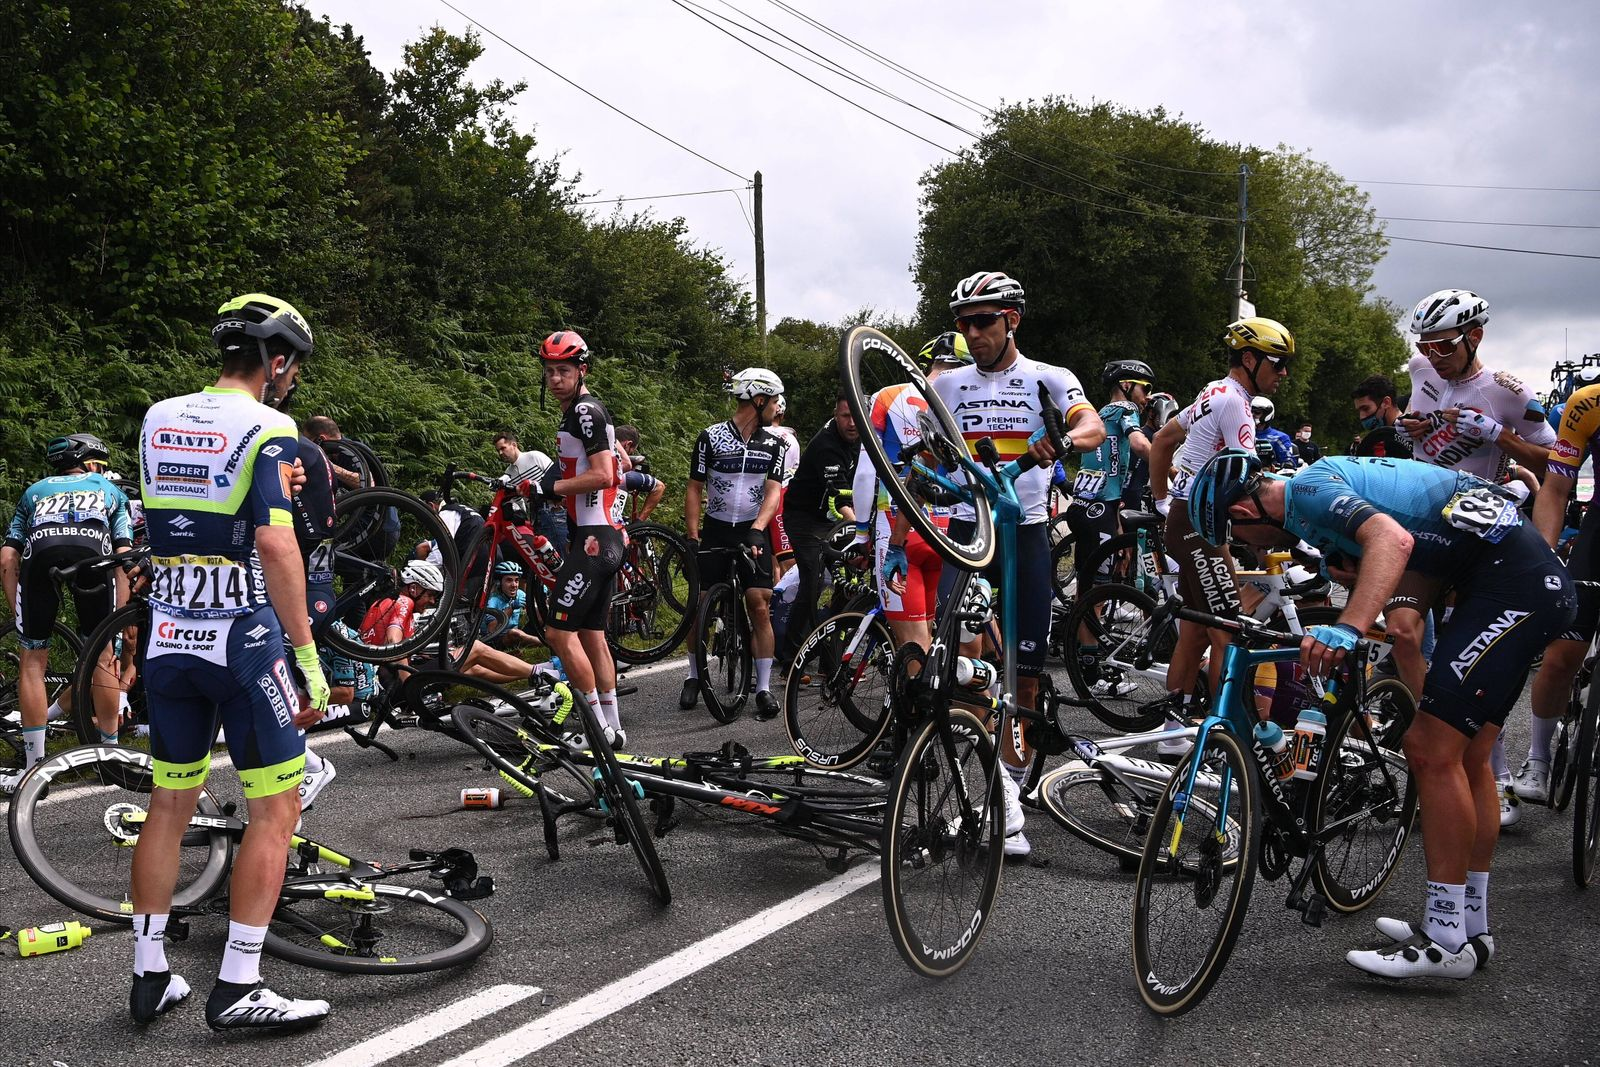 LANDERNEAU, FRANCE - JUNE 26 : crash of the peleton during stage 1 of the 108th edition of the 2021 Tour de France cycl